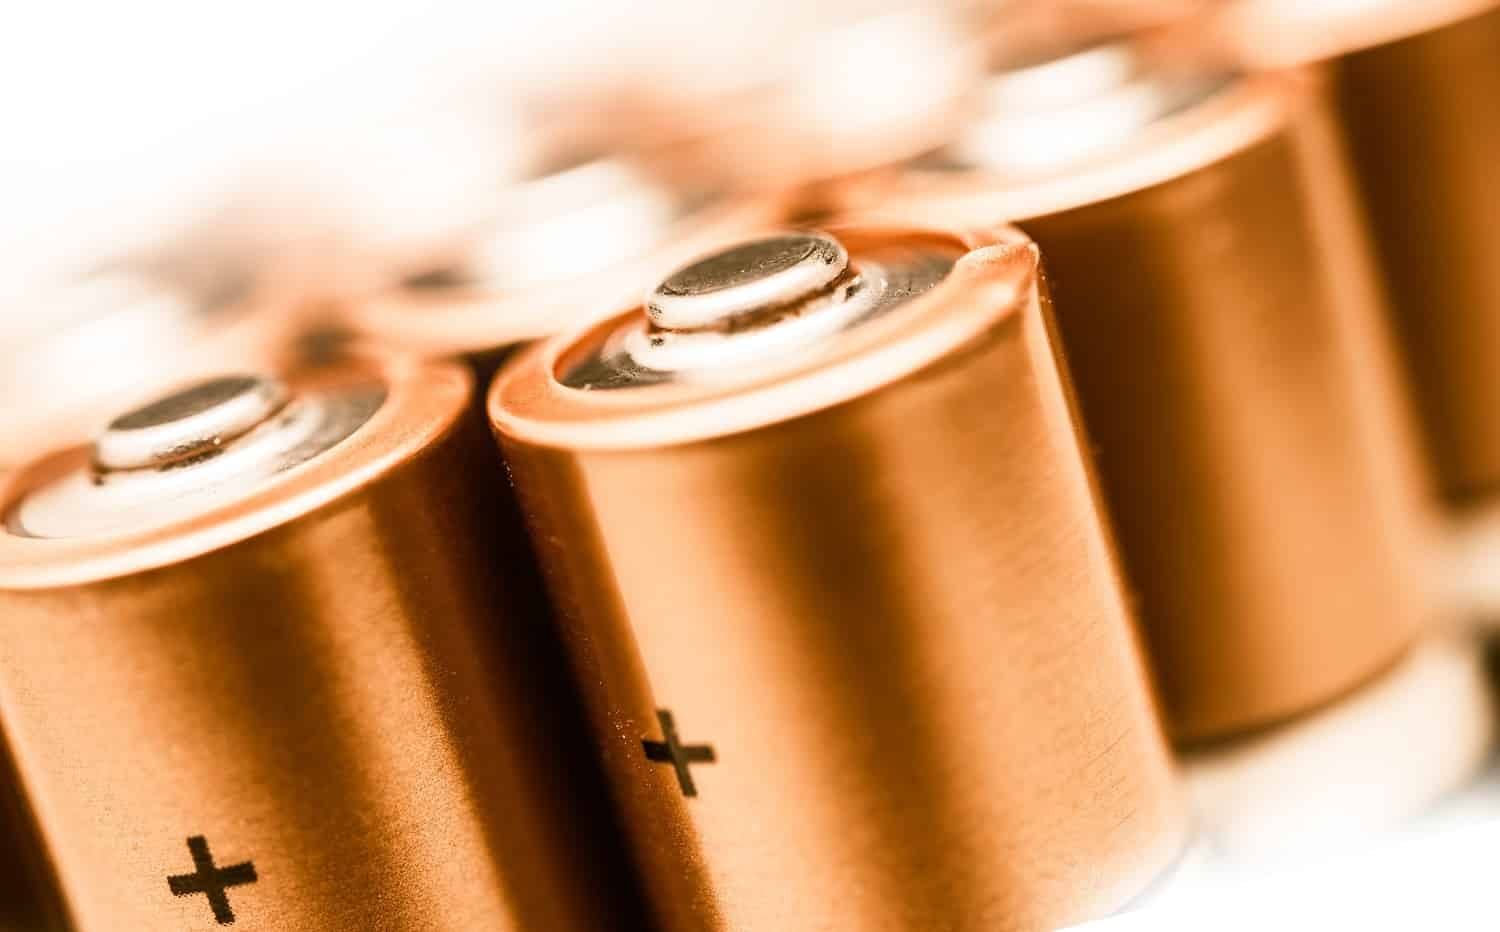 AA Batteries Closeup on a White Background. Batteries Technology. Power Industry.